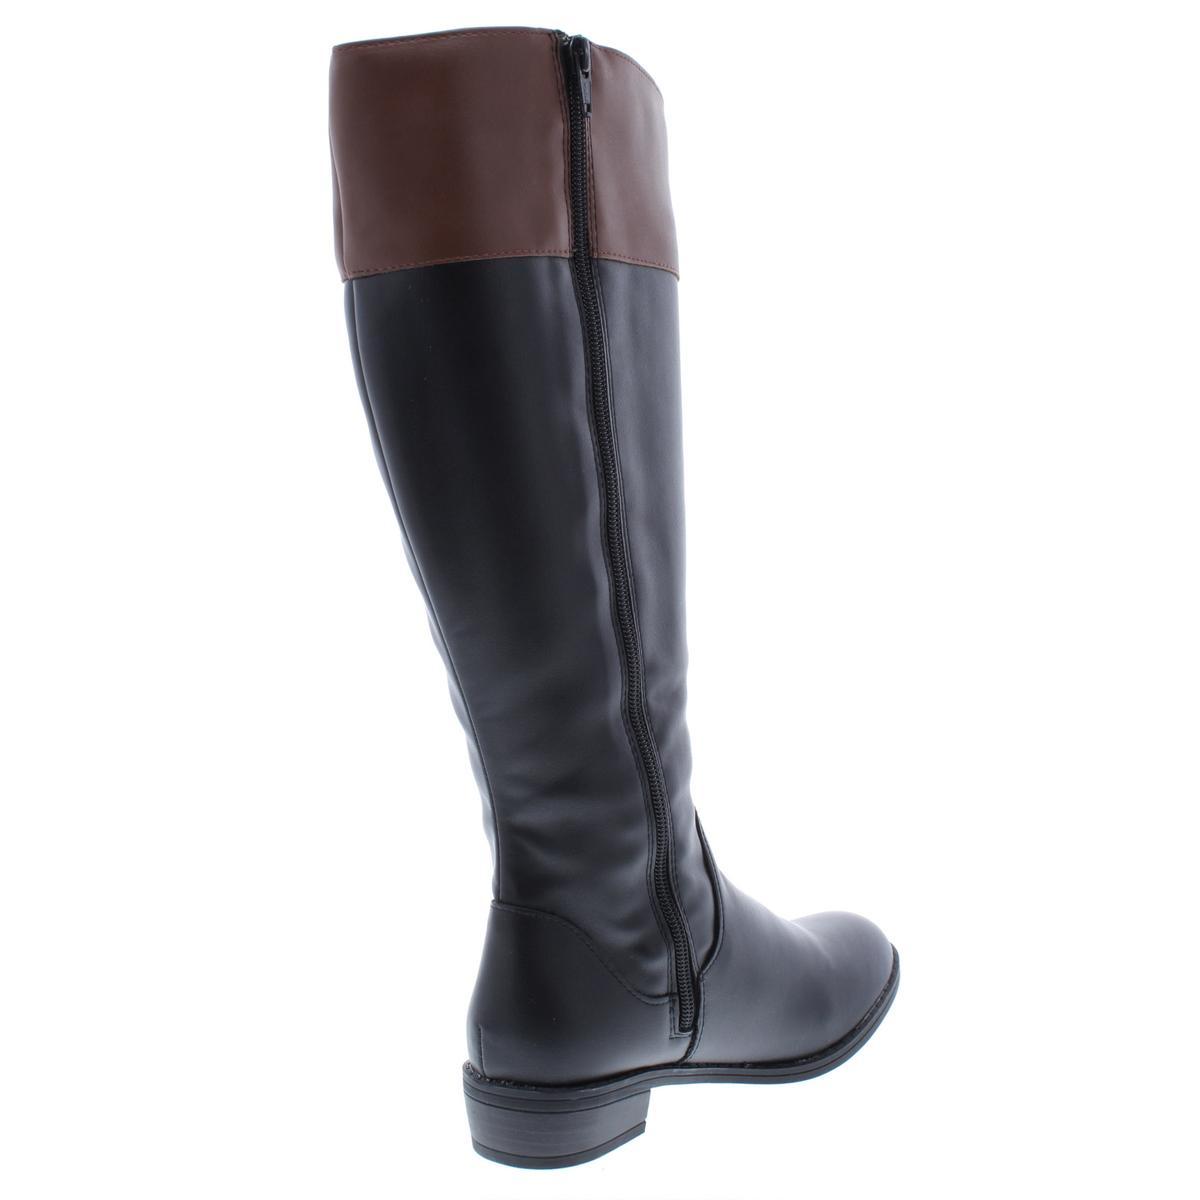 Karen-Scott-Womens-DelieeWC-Wide-Calf-Over-The-Knee-Riding-Boots-Shoes-BHFO-5181 thumbnail 6